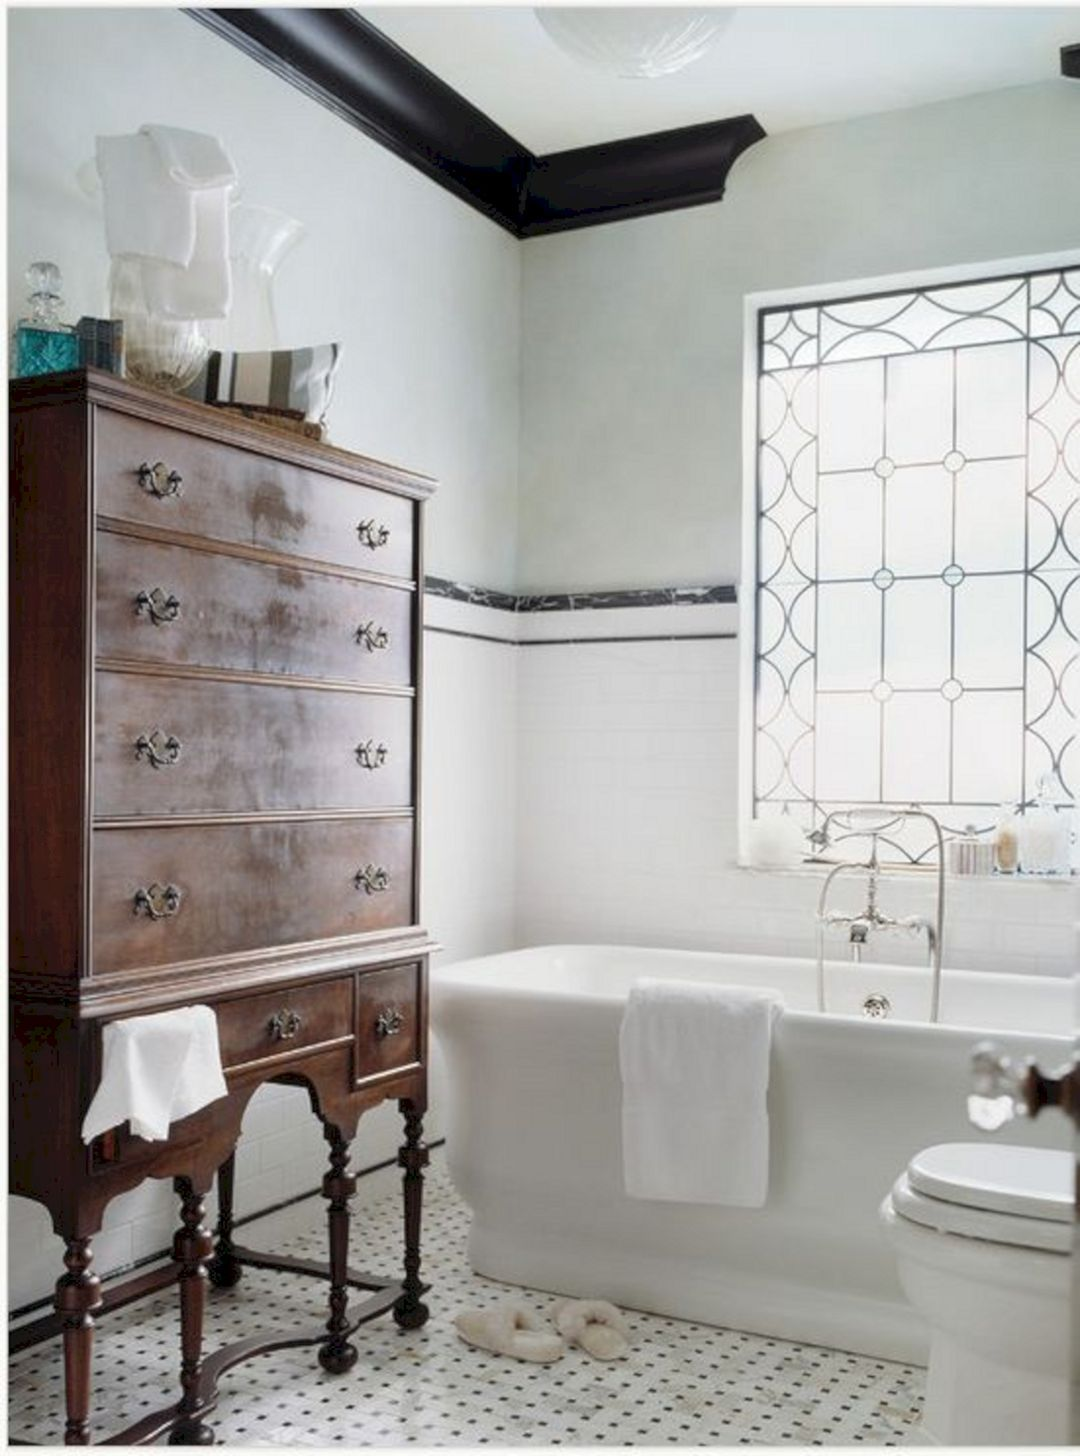 Top 25+ Modern Vintage Bathroom Design And Decor Ideas is part of Top  Modern Vintage Bathroom Design And Decor Ideas - There are some people who use their bathroom for a place to read their favorite books or newspapers, thinking about the peace and quiet that you receive from the place  There's a lot you can do in order to your bathroom by employing ceramic tiles  The bathroom should be an area of comfort  A bathroom is full of moisture, and you require very good ventilation  If you would like to revitalize your bathroom without remodeling the entire room, here are a few design ideas which will surely earn a difference  If you want to remodel your bathroom, you can require